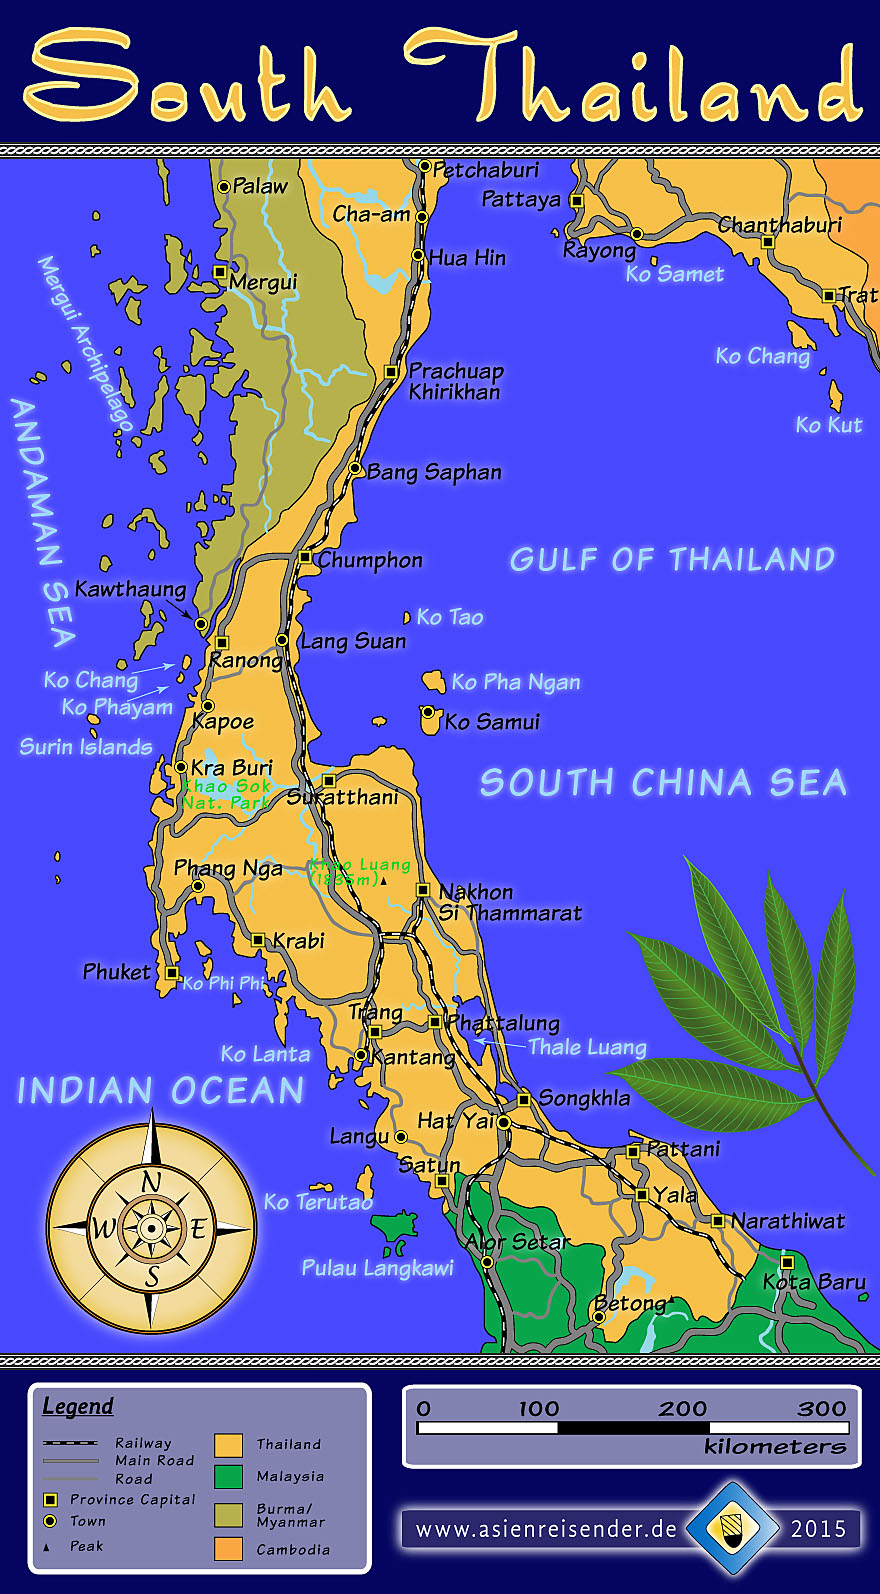 'Interactive Map of South Thailand' by Asienreisender